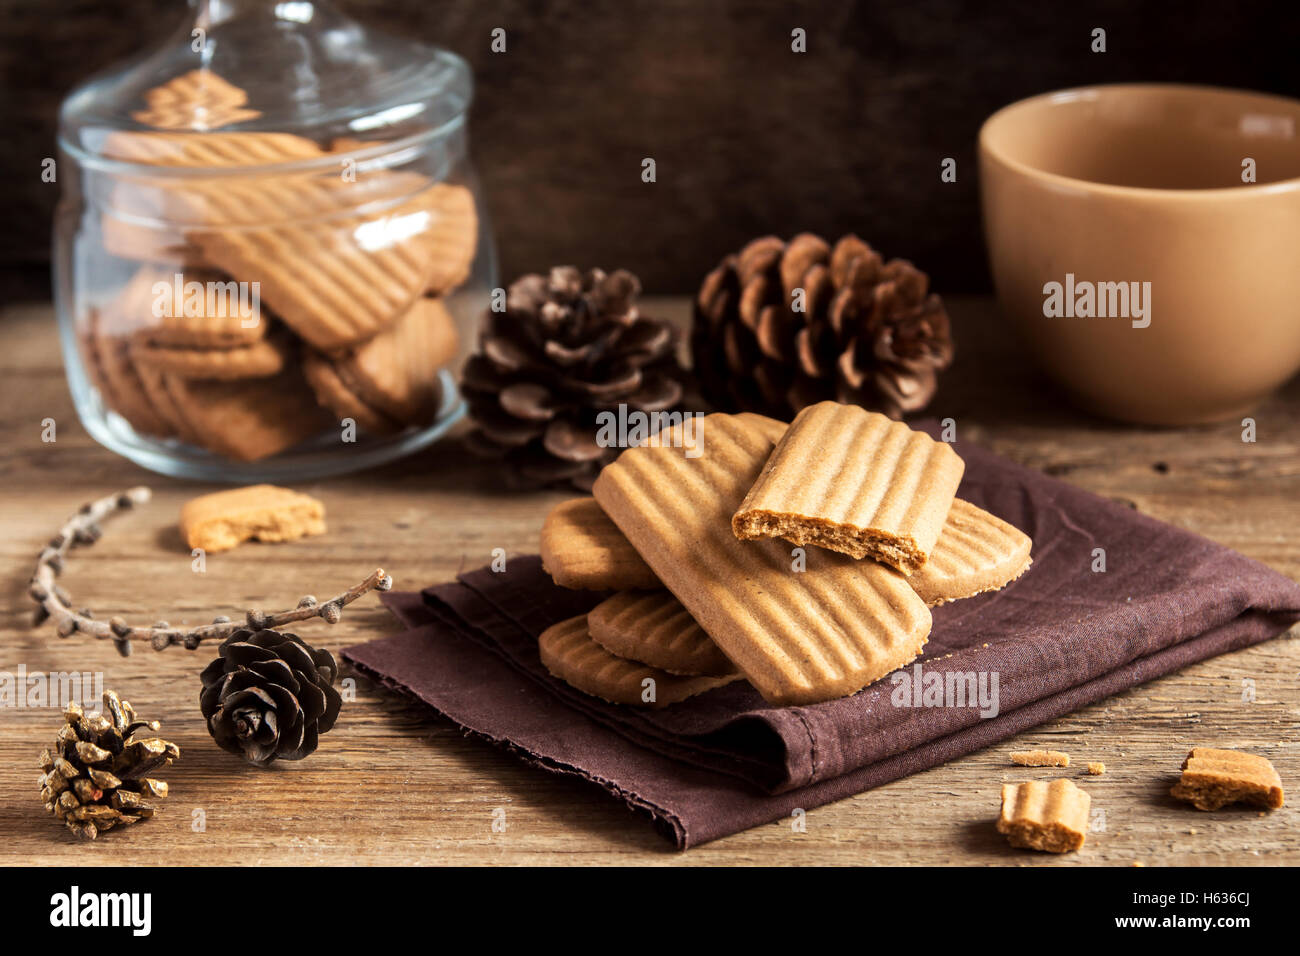 Homemade spicy ginger cookies on rustic wooden table close up, tasty winter ginger pastry - Stock Image